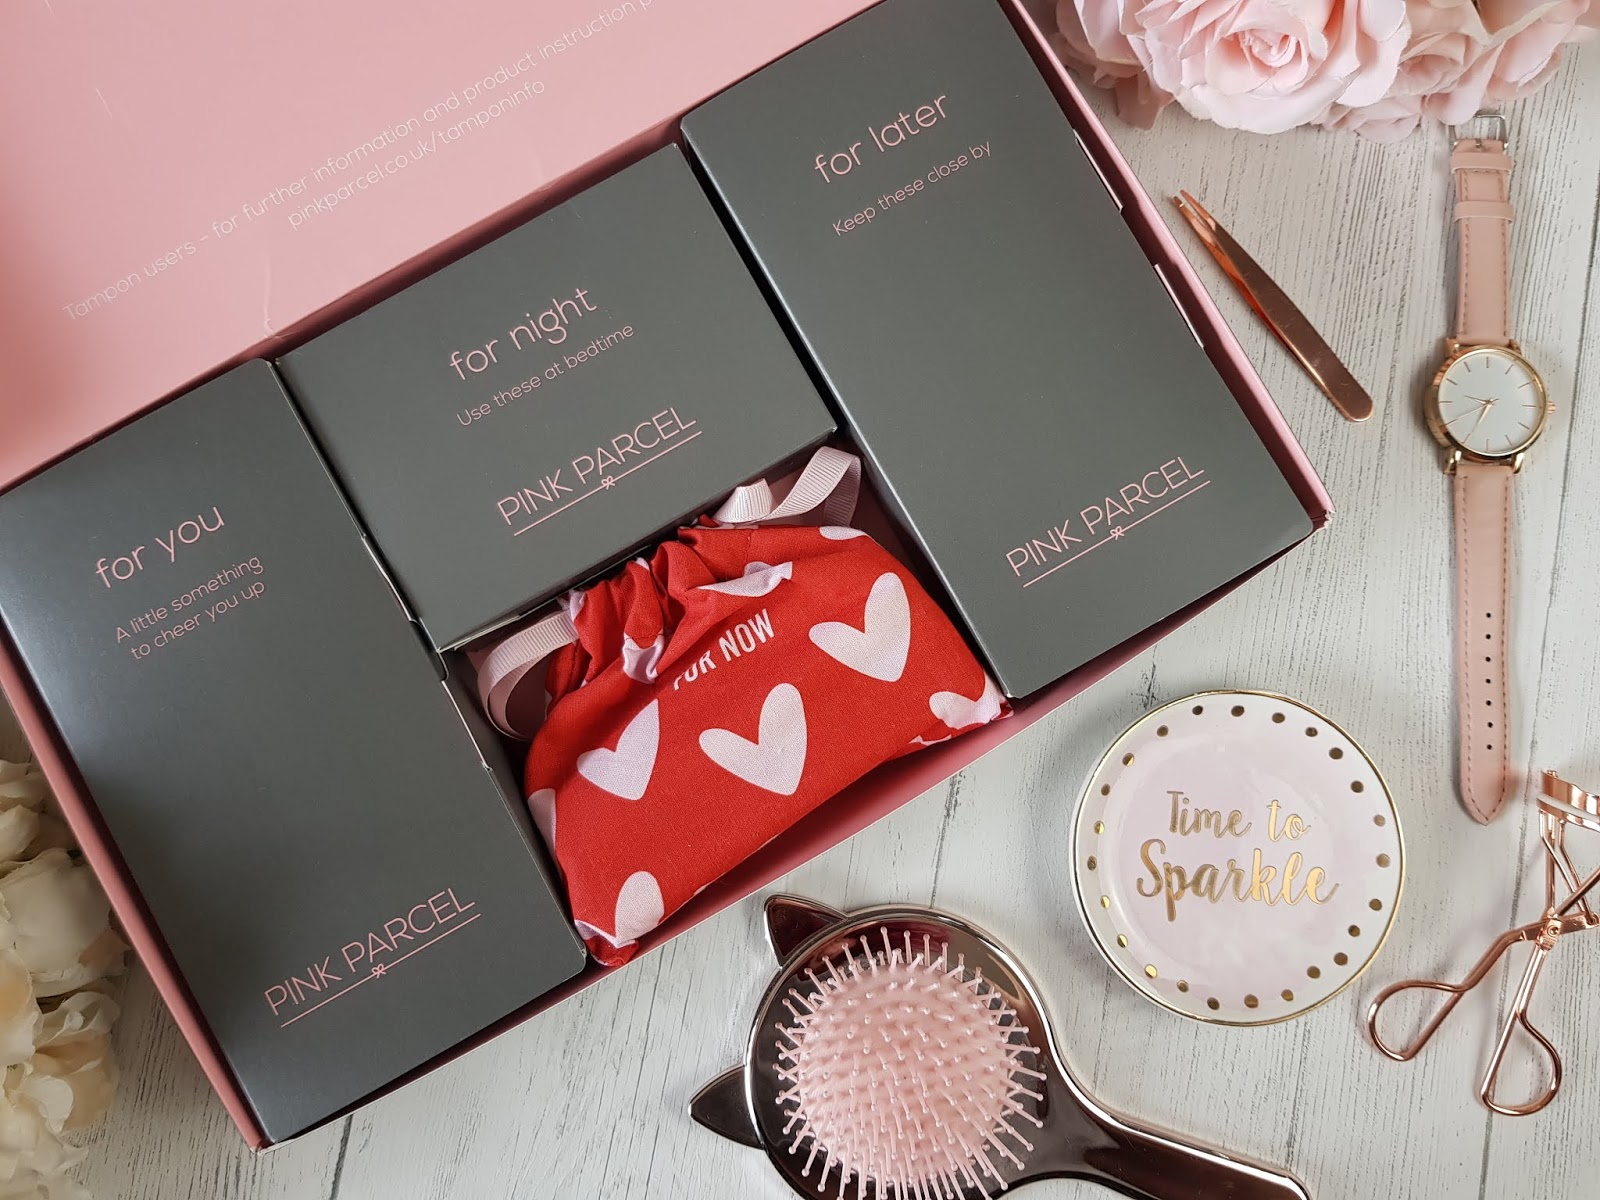 Pink Parcel Monthly Subscription Box